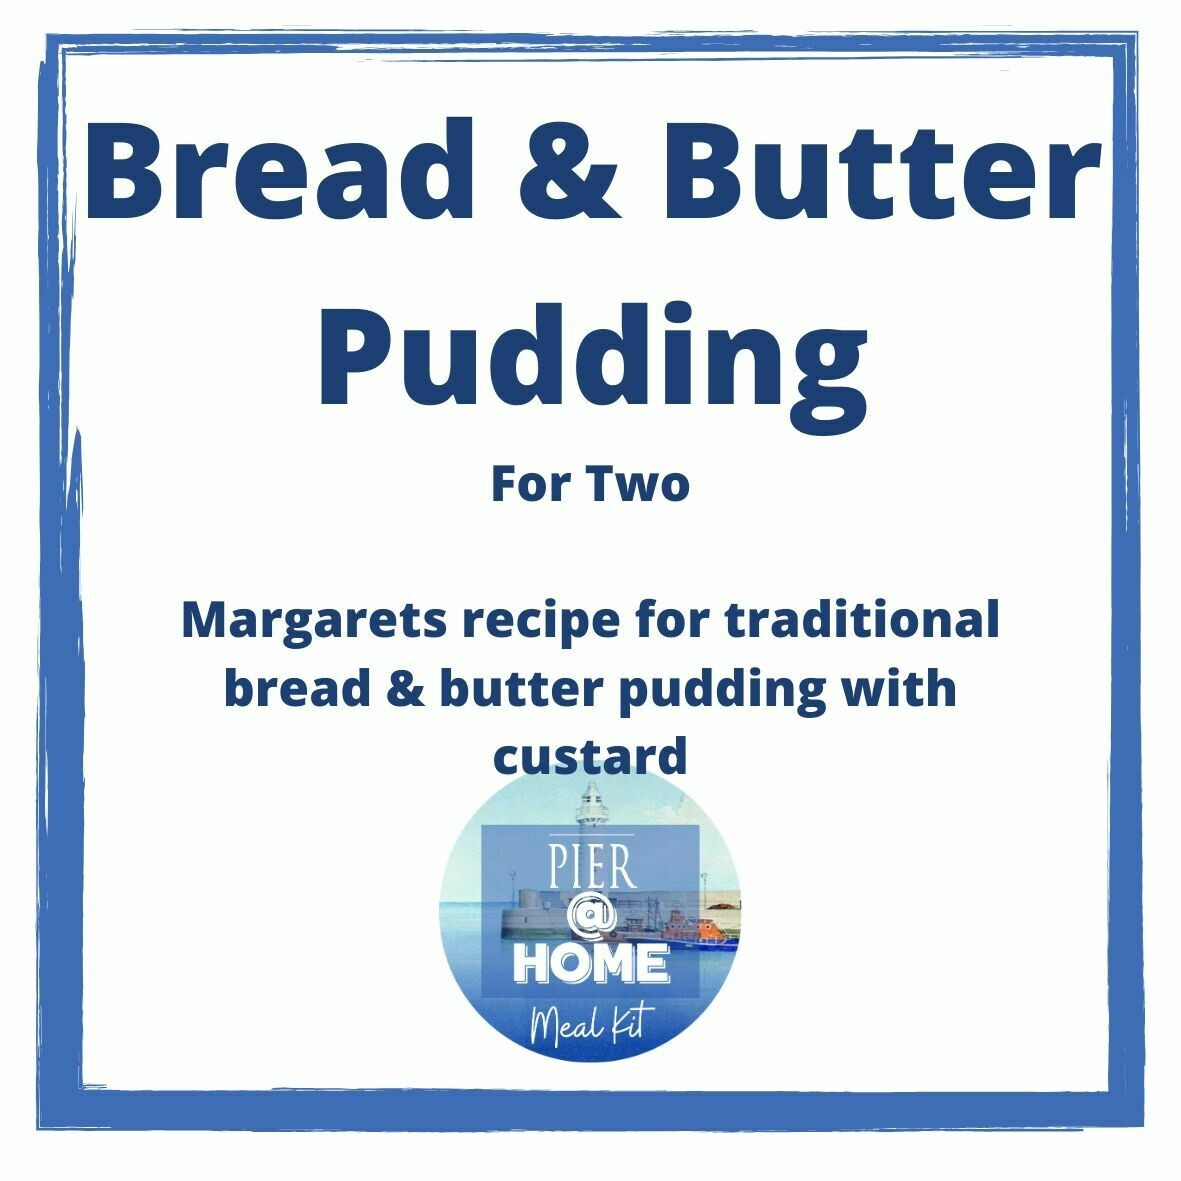 Bread & Butter Pudding for two